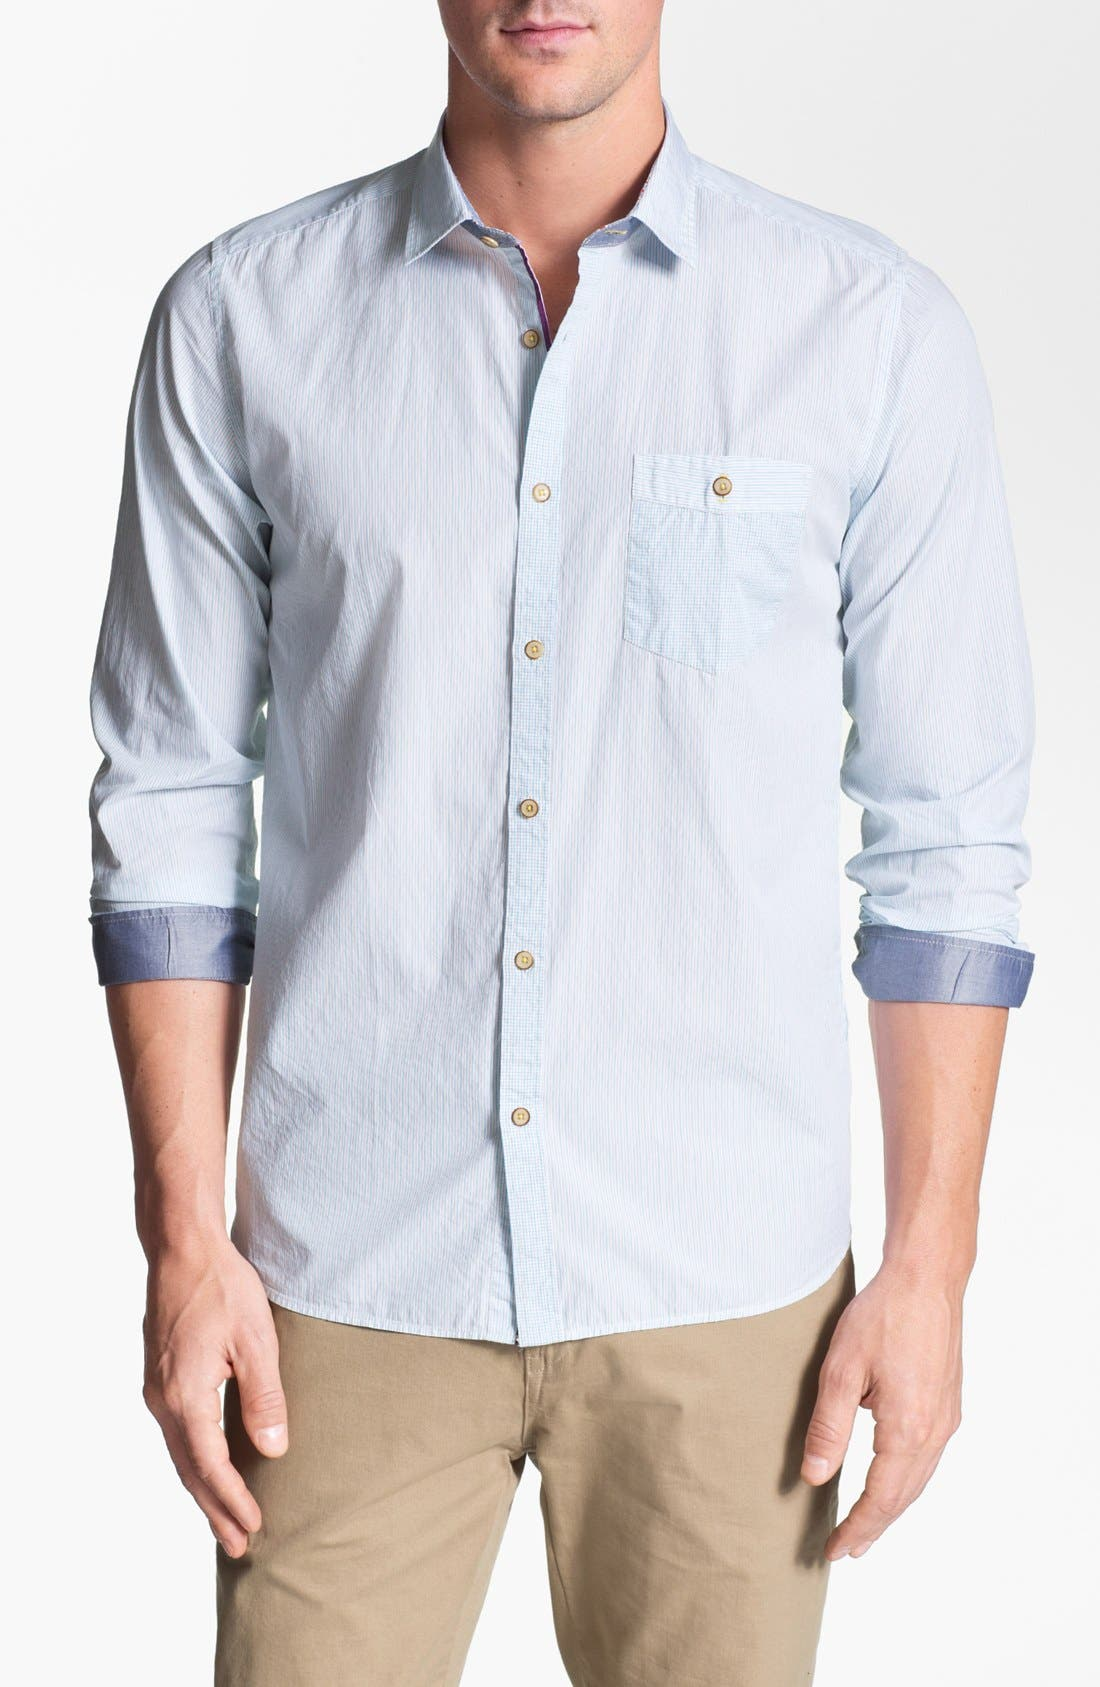 Alternate Image 1 Selected - Ted Baker London 'Dezfed' Trim Fit Sport Shirt